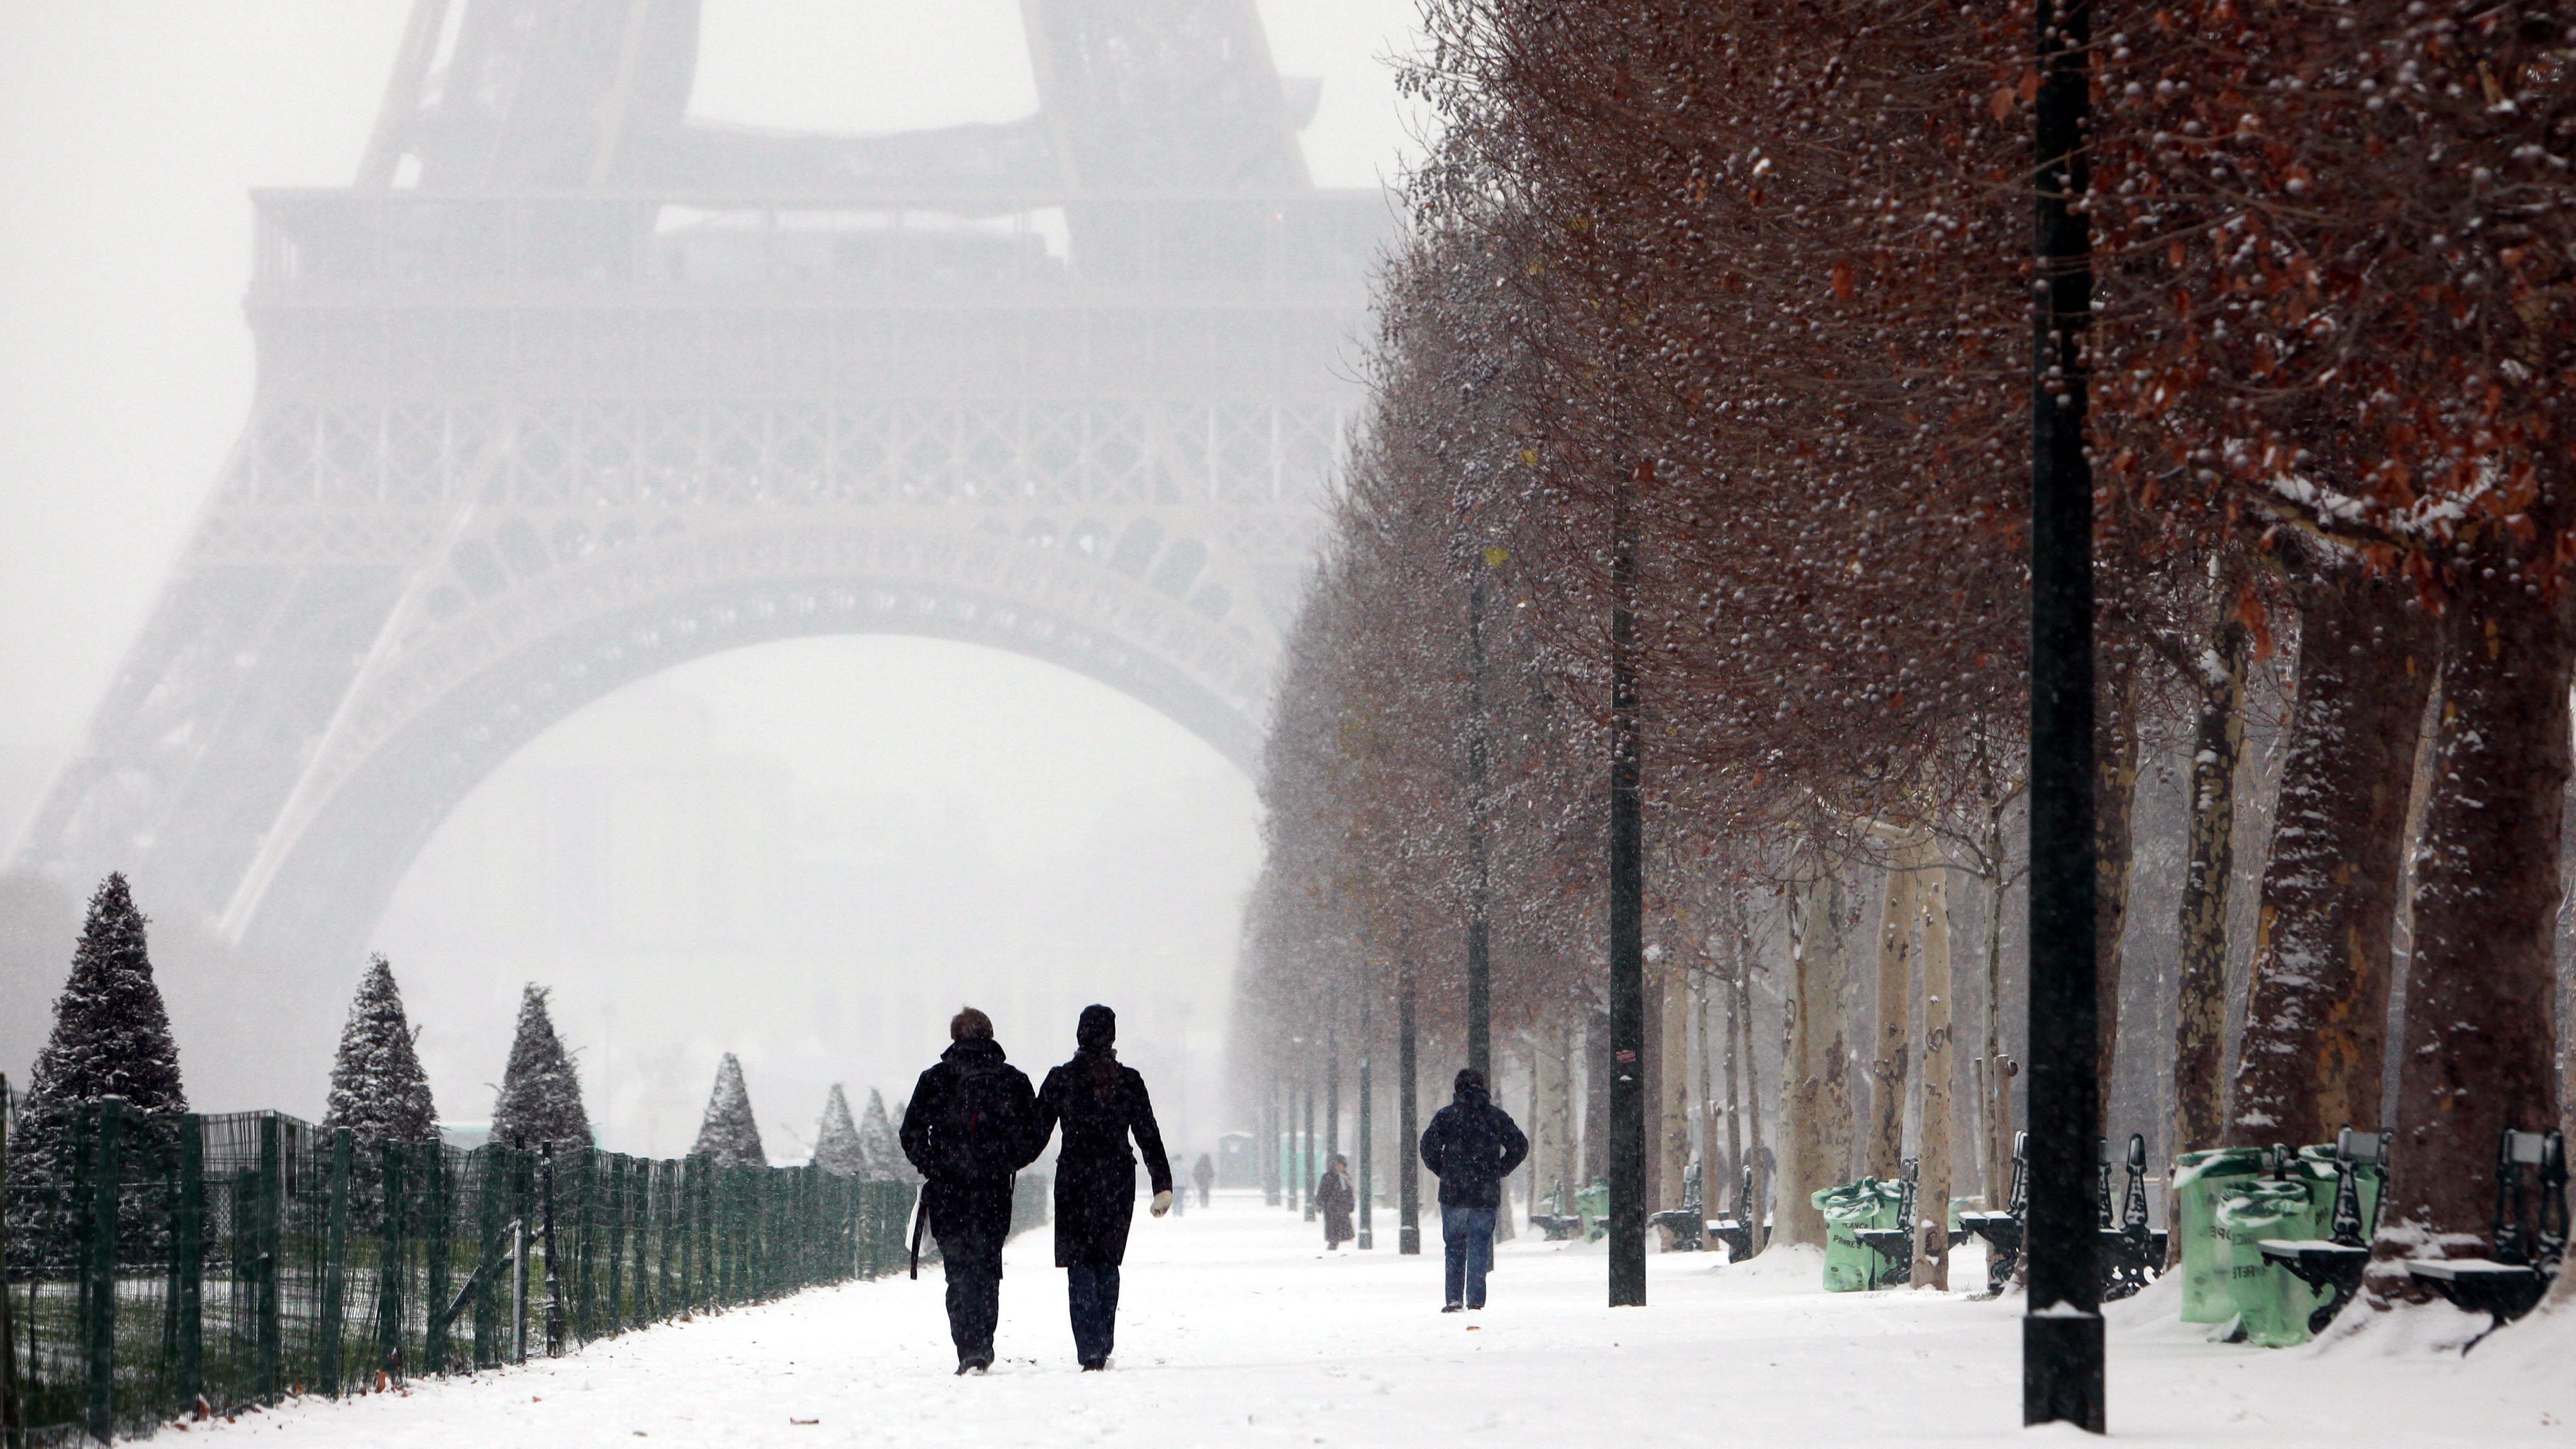 https://thewallpapers.org/zoom/76662/snow-in-paris.jpg